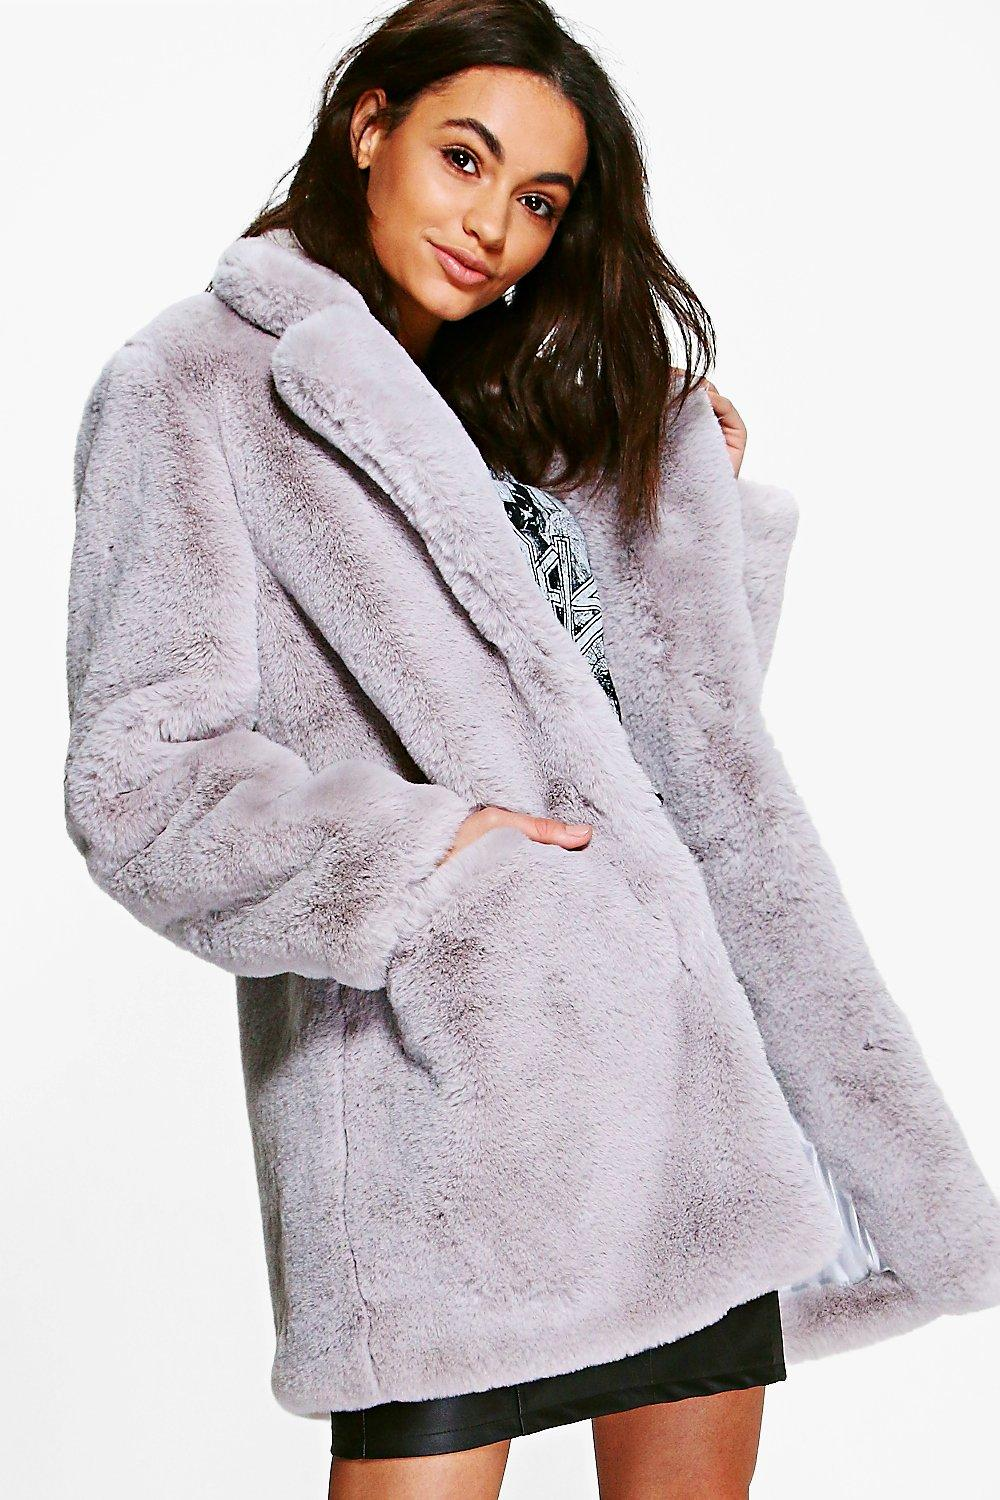 Faux Fur Coats | Furry & Fluffy Coats for Women | Boohoo